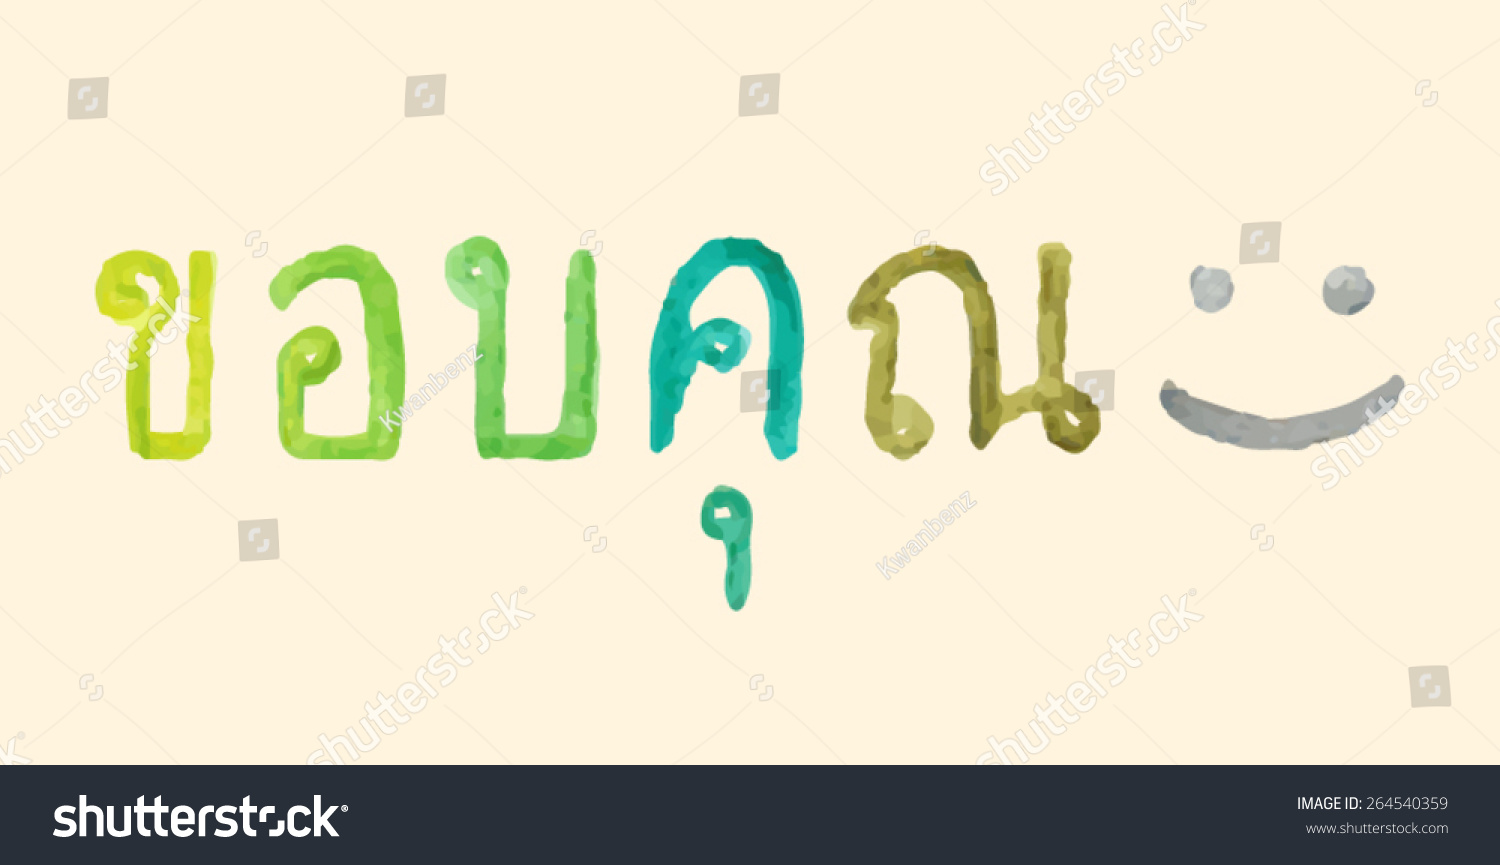 how to pronounce thank you in thai